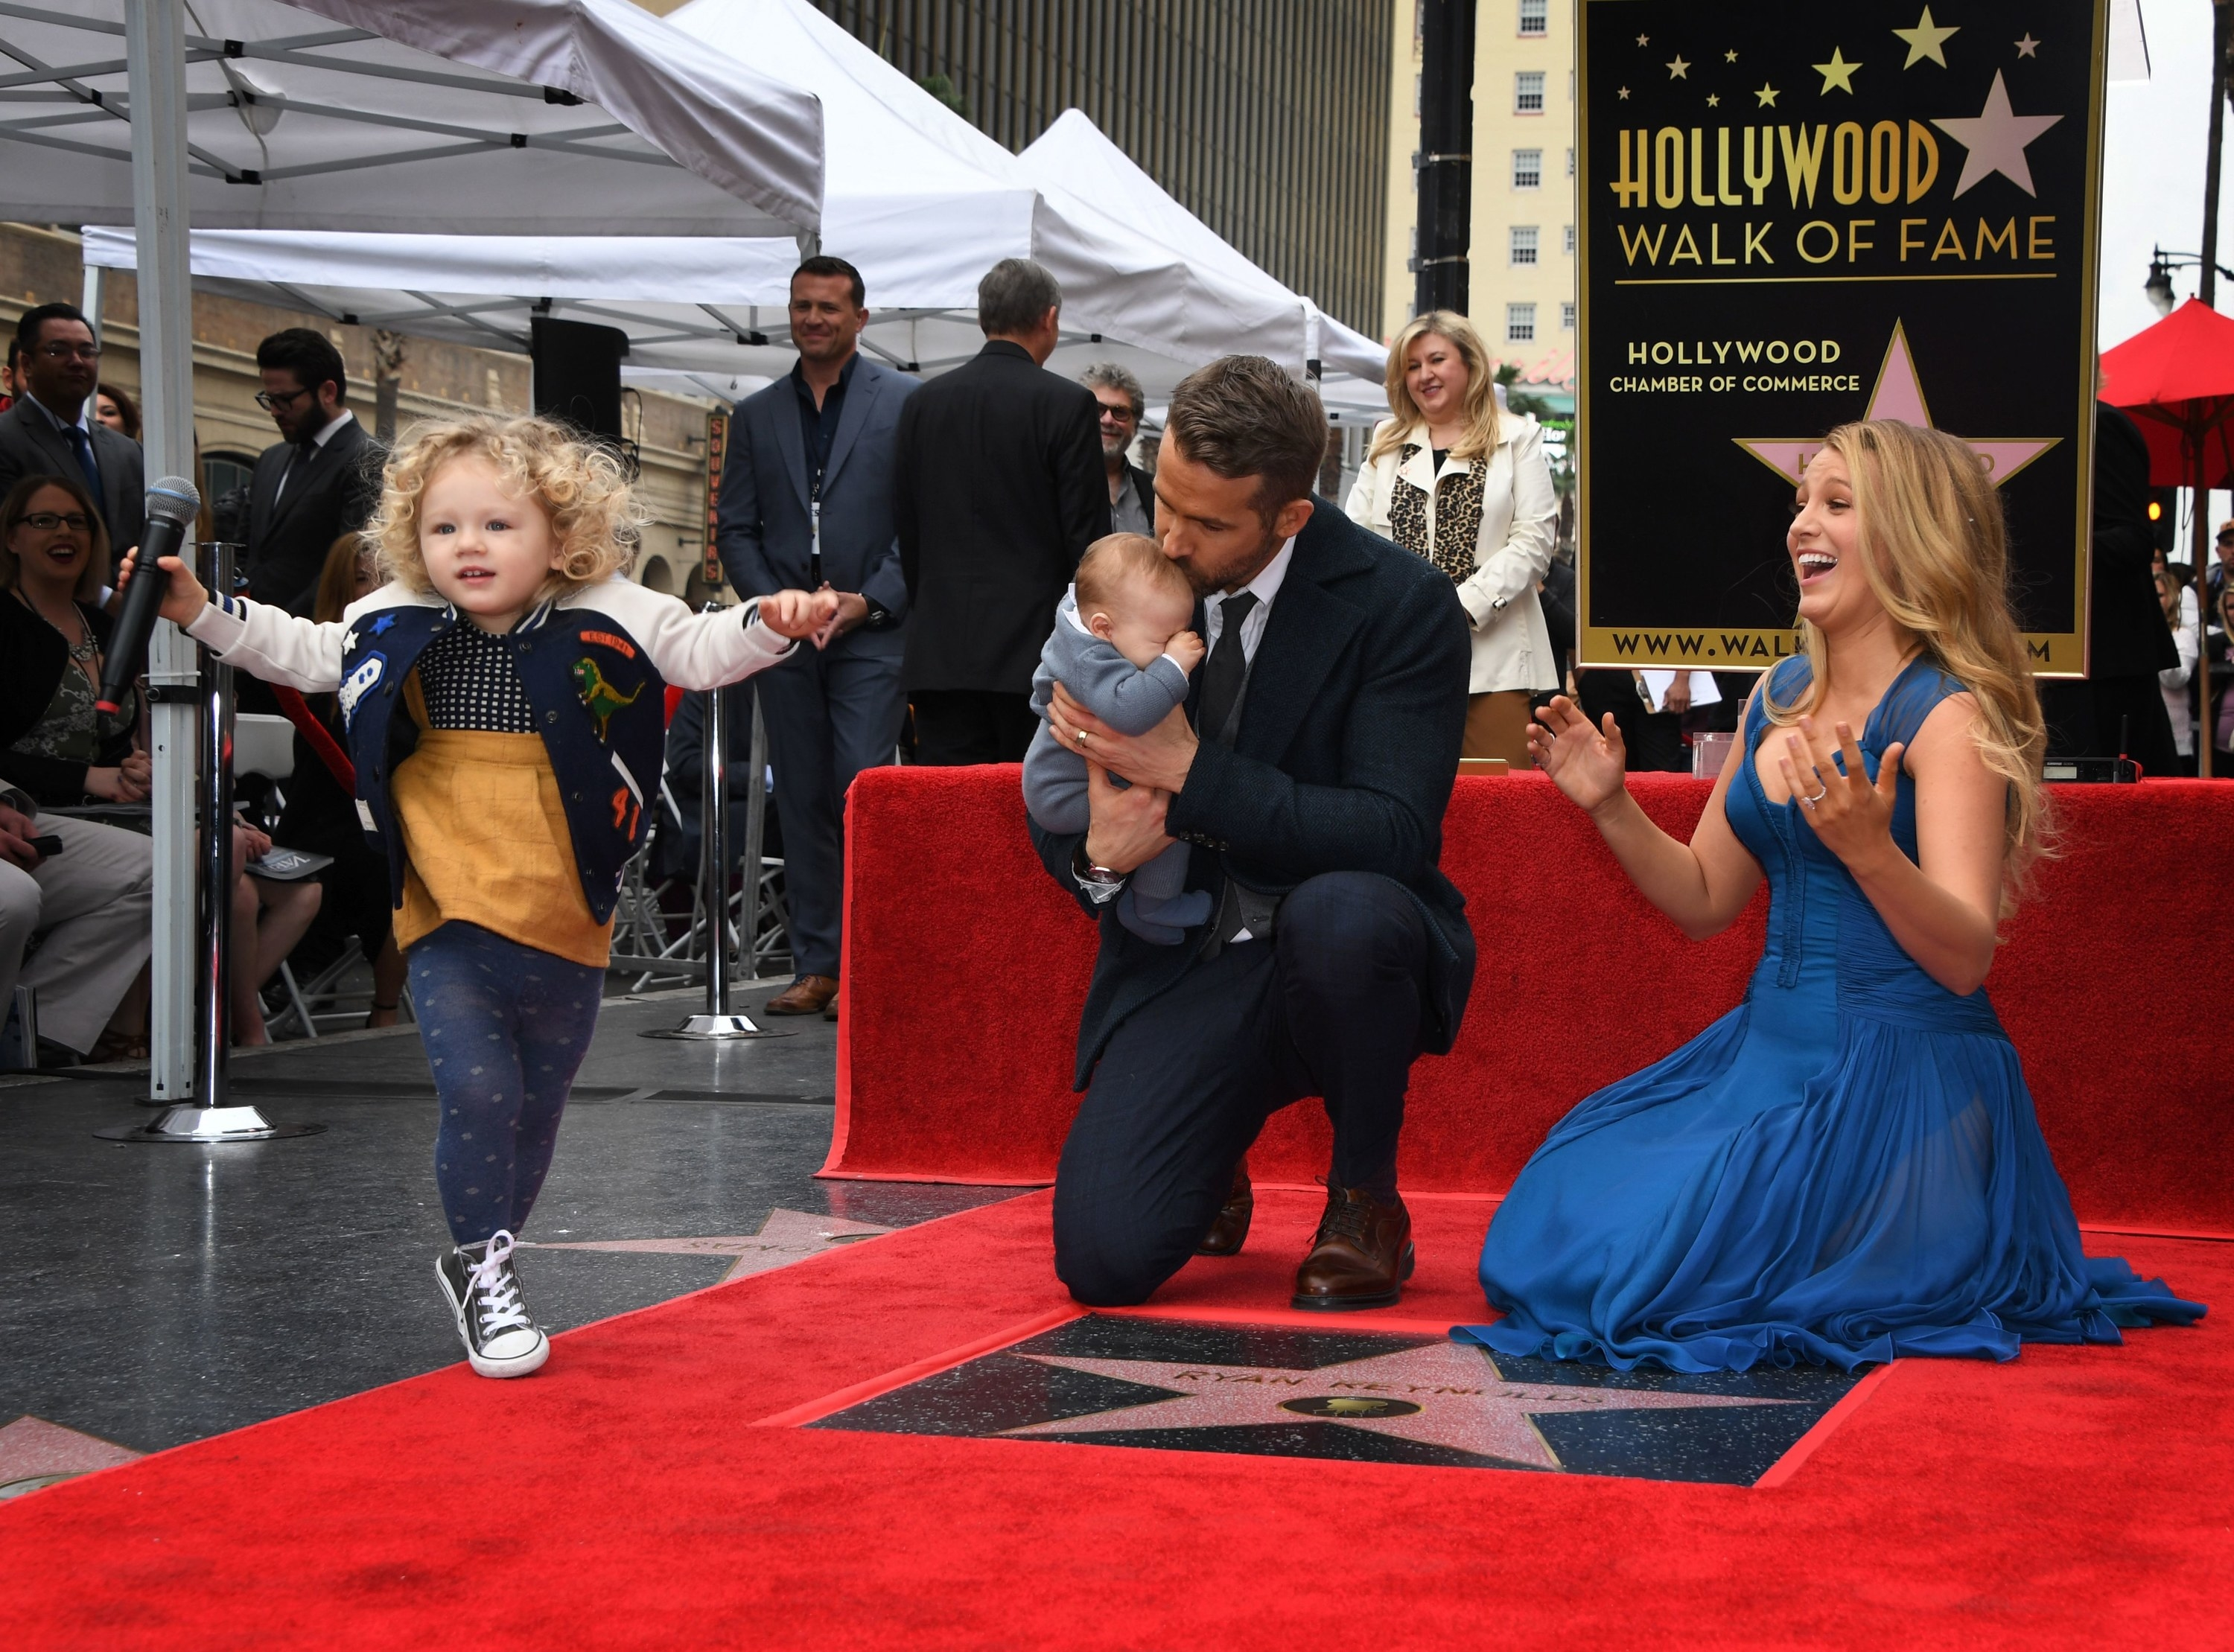 Ryan Reynolds, dressed in a suit, and Blake Likely, in a blue dress, kneel on the Hollywood Walk of Fame above Reynolds' star; Reynolds holds a baby as another child jumps onto a red carpet